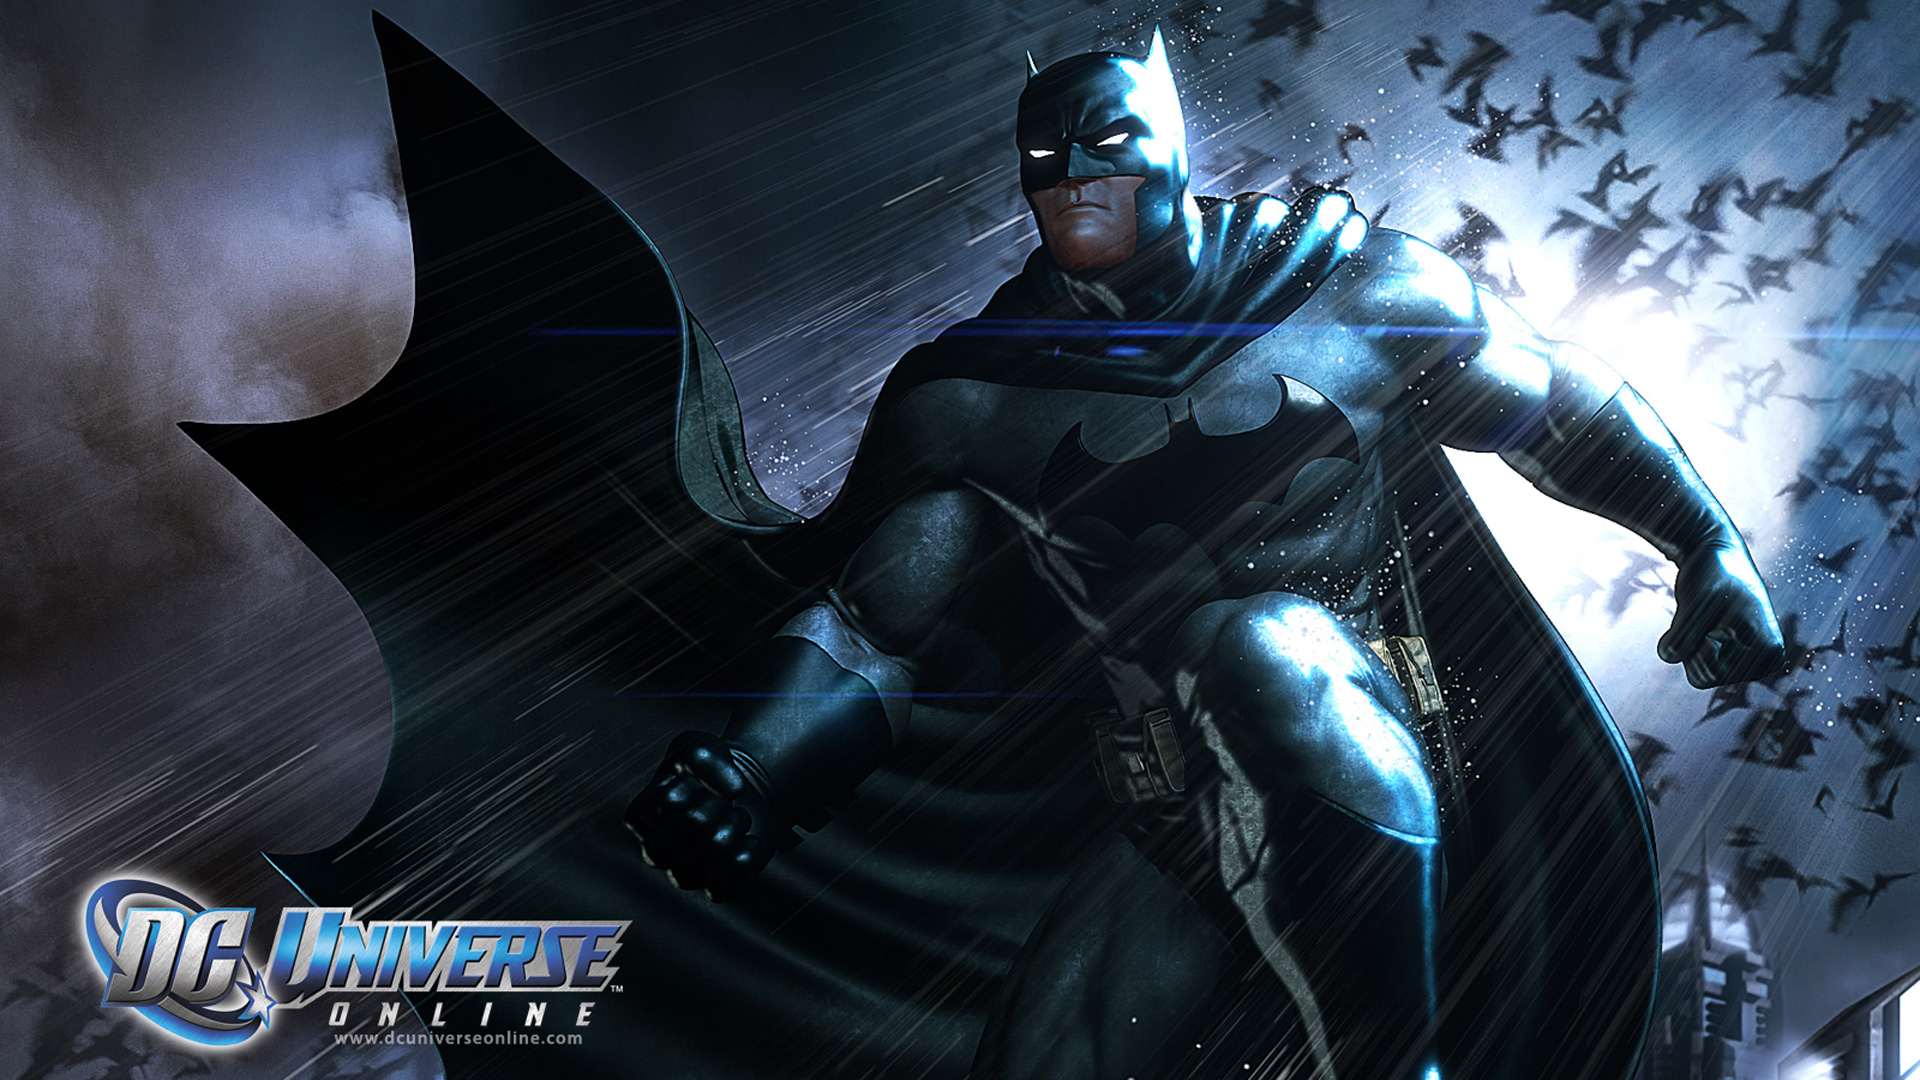 Free Dc Universe Online Wallpaper In 1920x1080